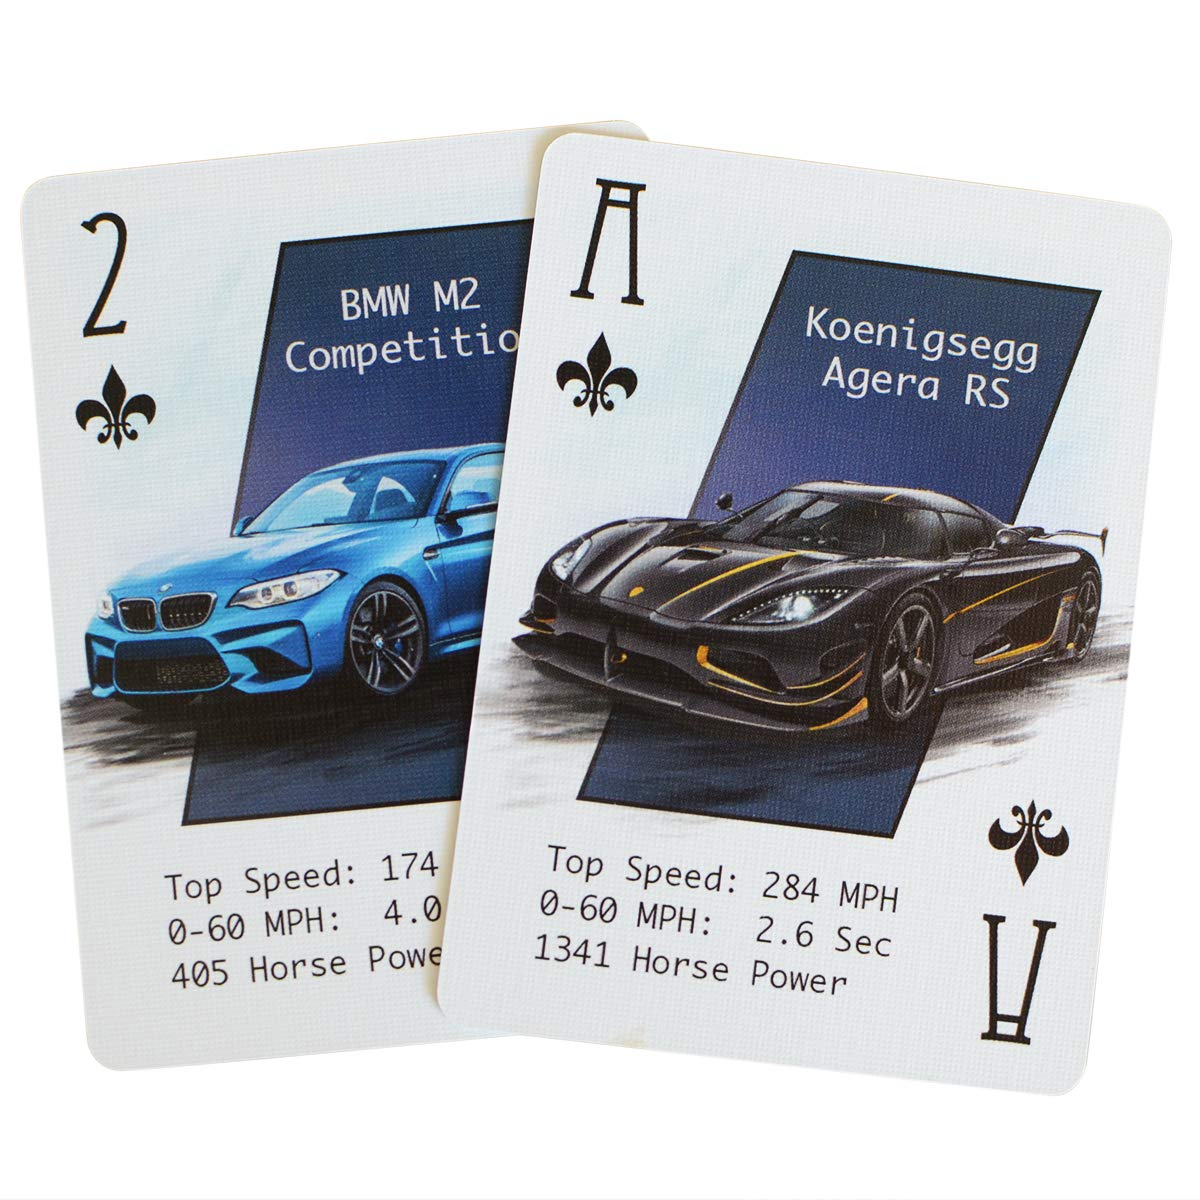 Unique Deck of Cards Casino Grade Paper Cool Custom Cards for The Car Enthusiast ARTISTICPX Performance Car Playing Cards VII